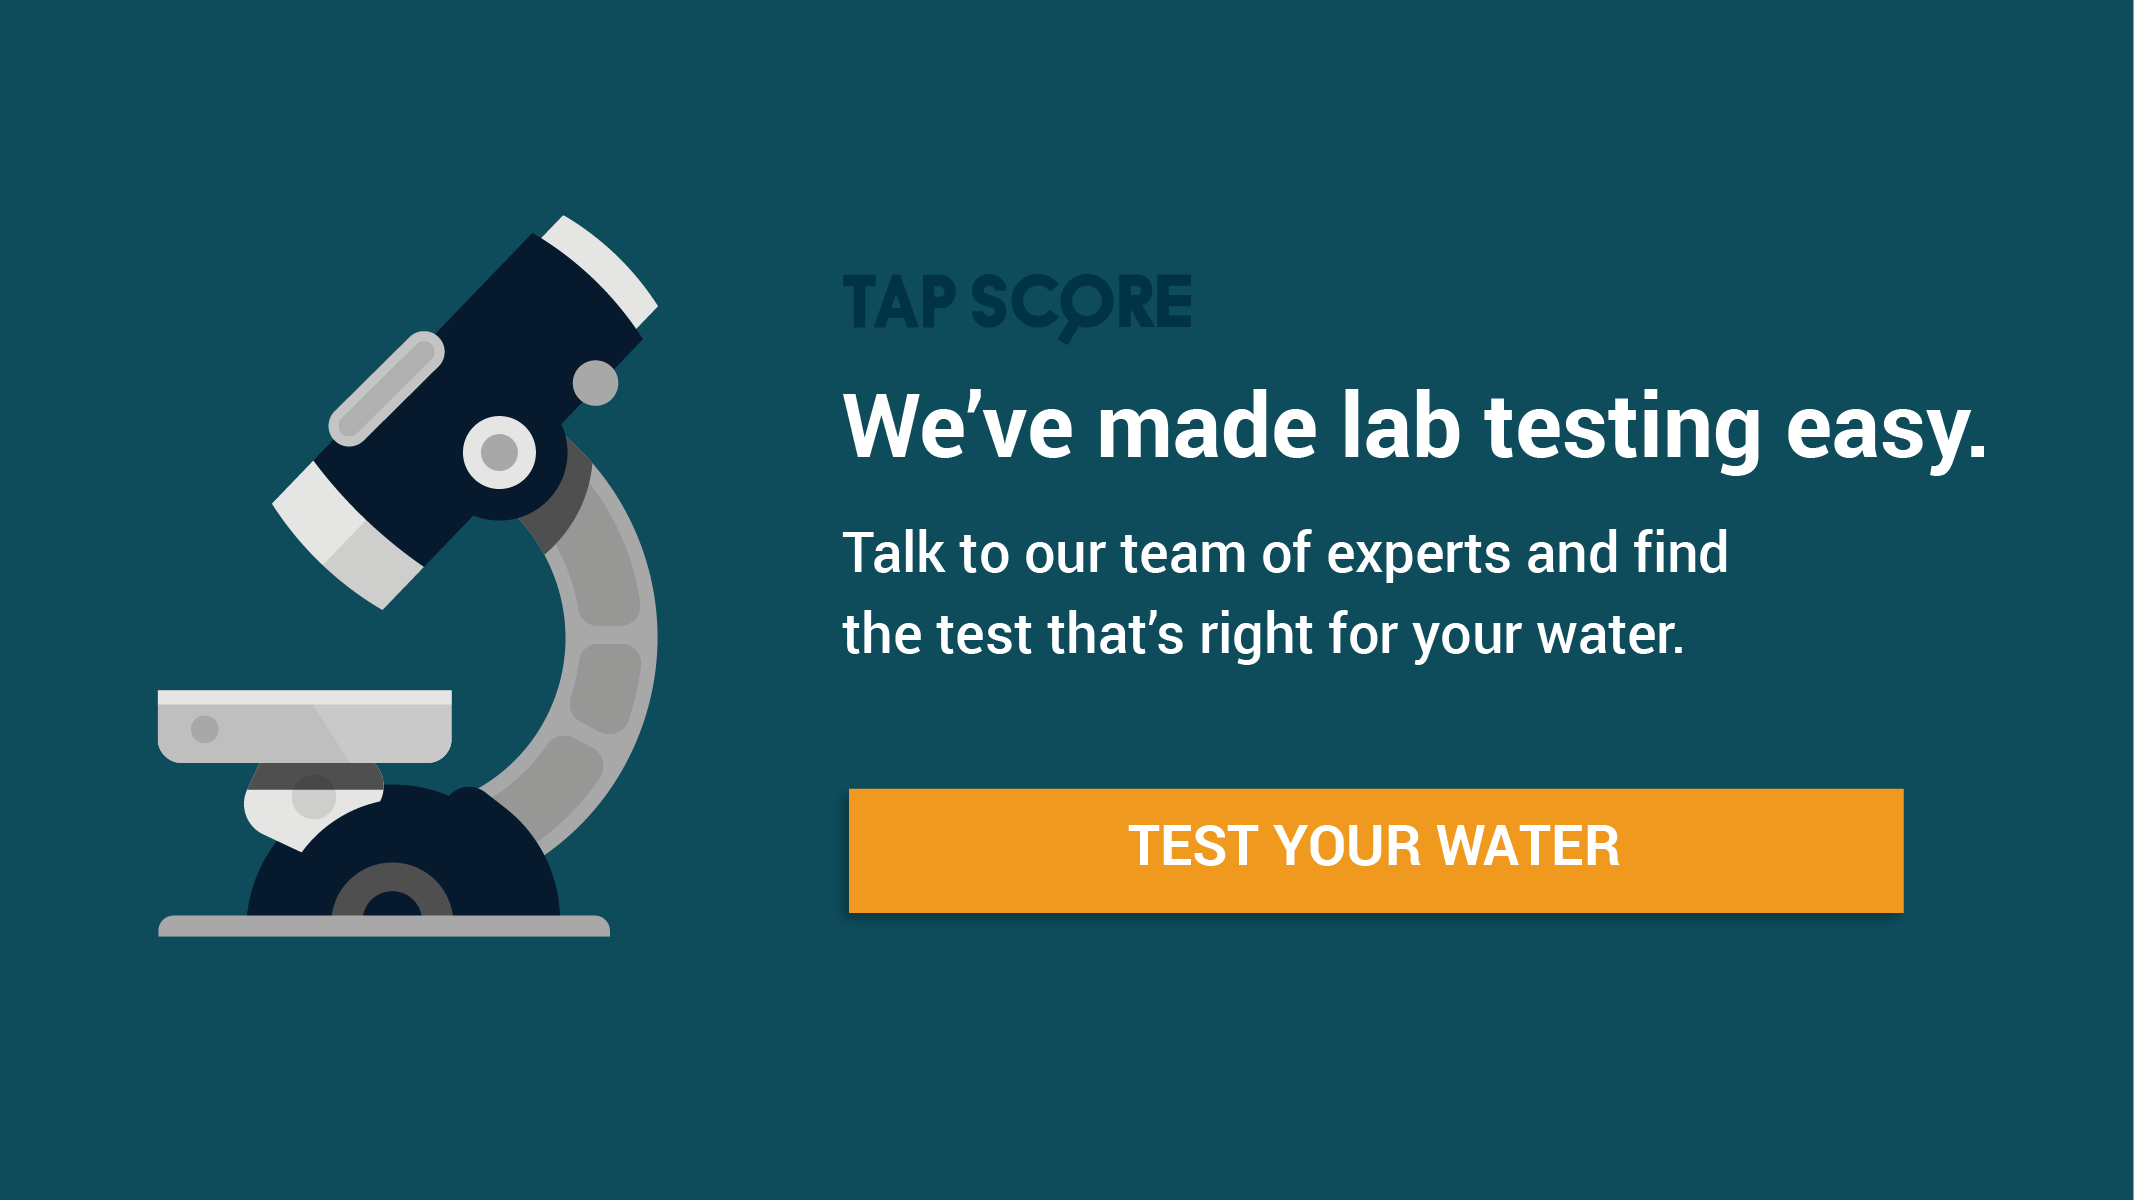 Well Water Testing Made Easy